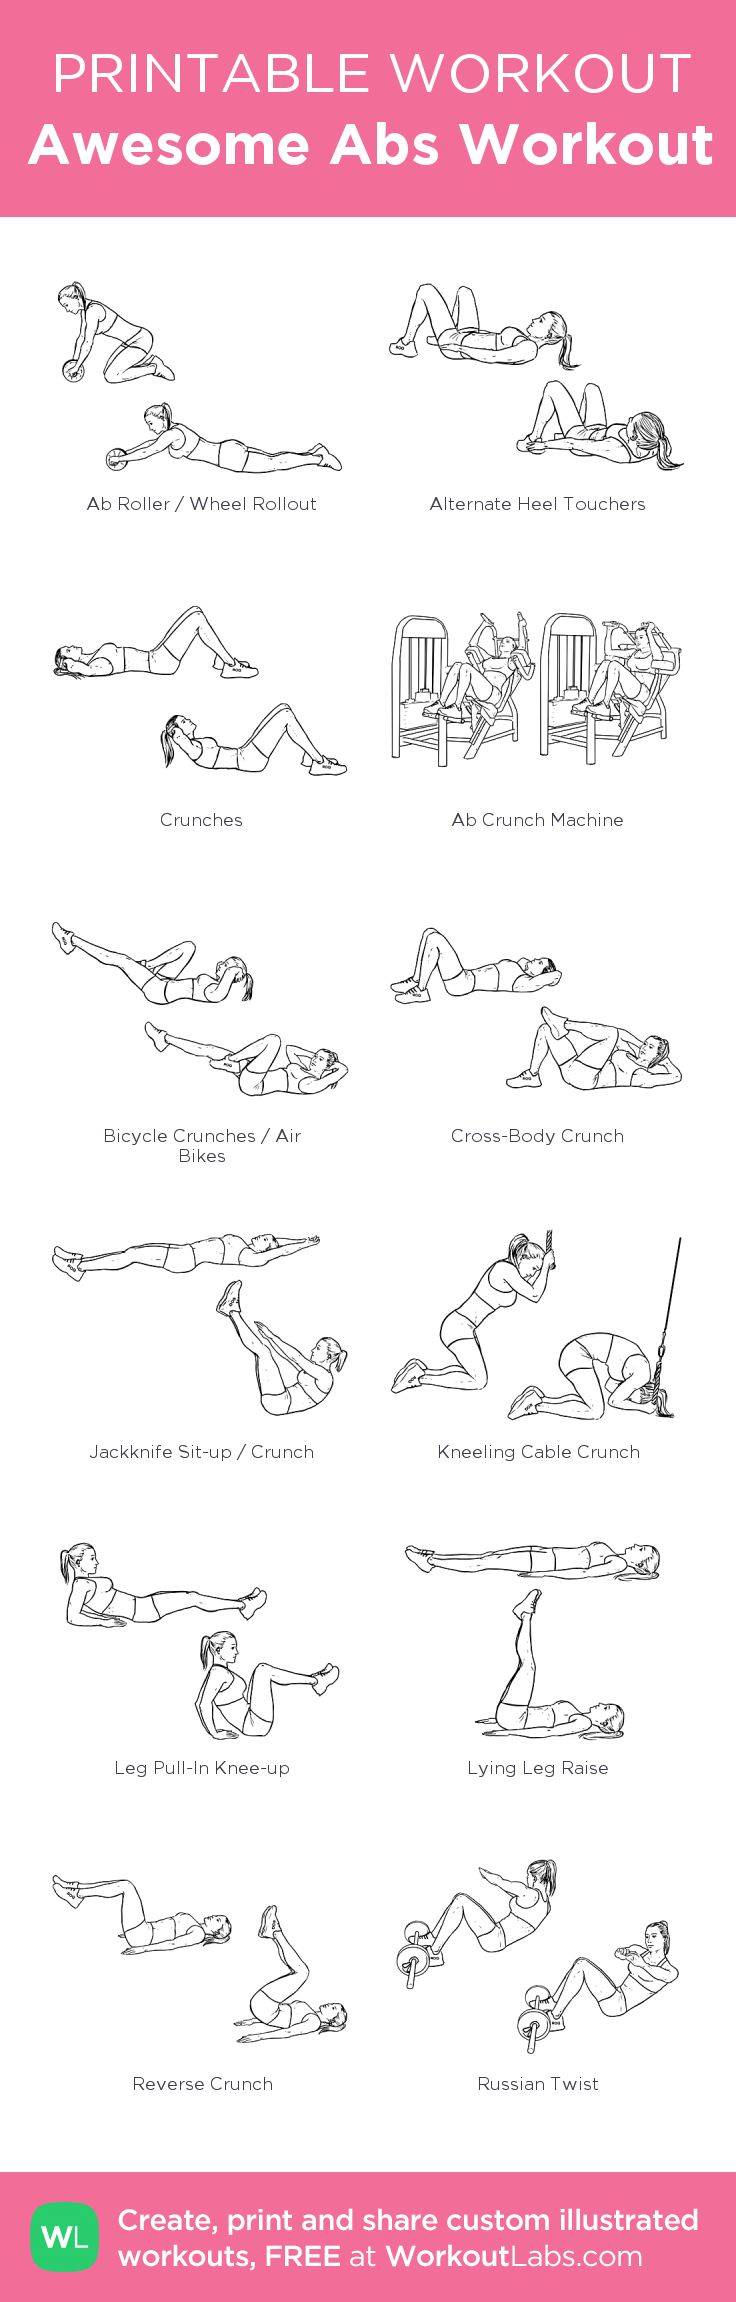 Ab Gym Workout